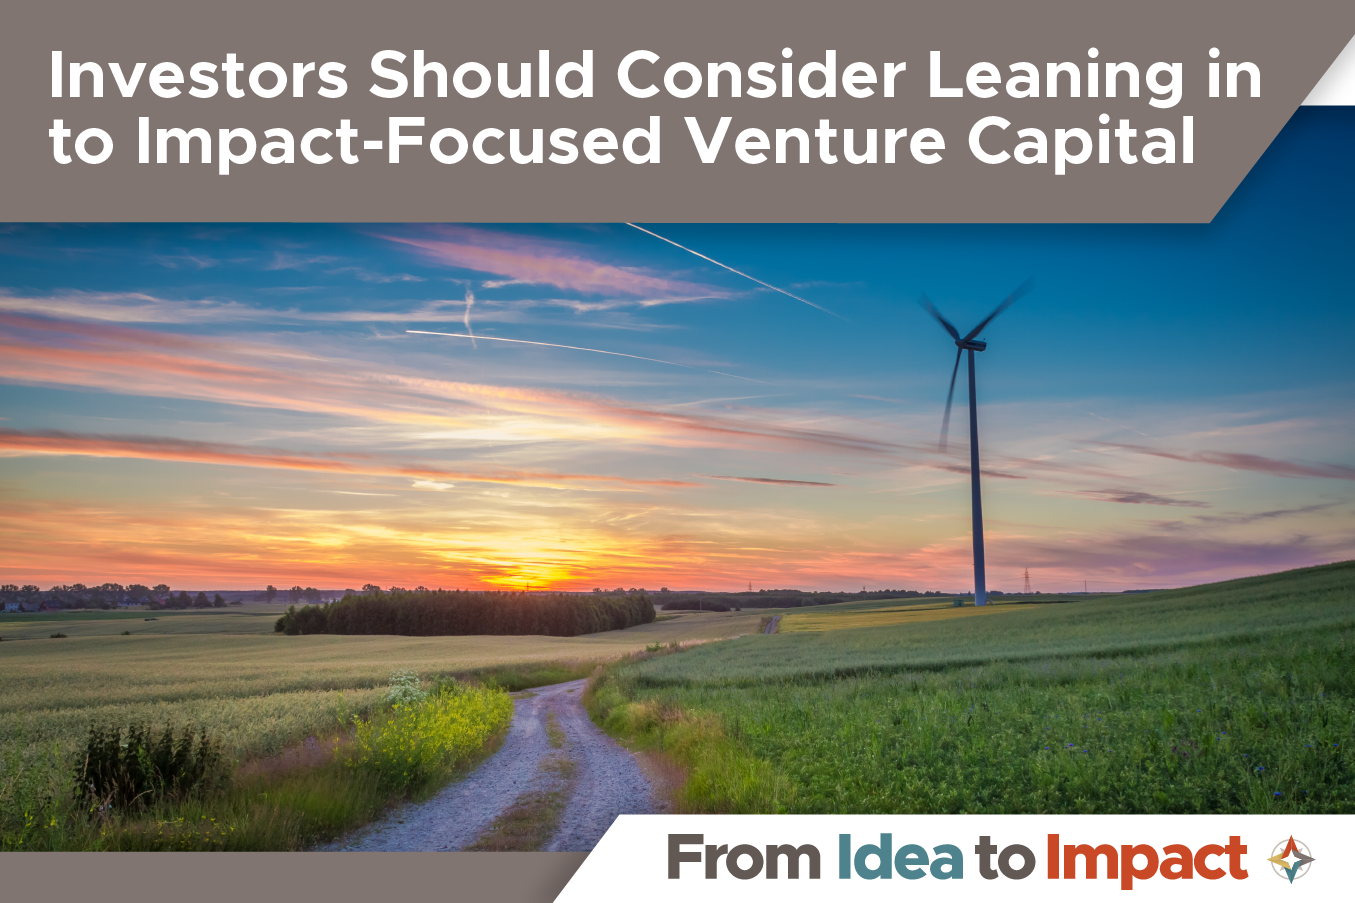 Investors Should Consider Leaning in to Impact-Focused Venture Capital